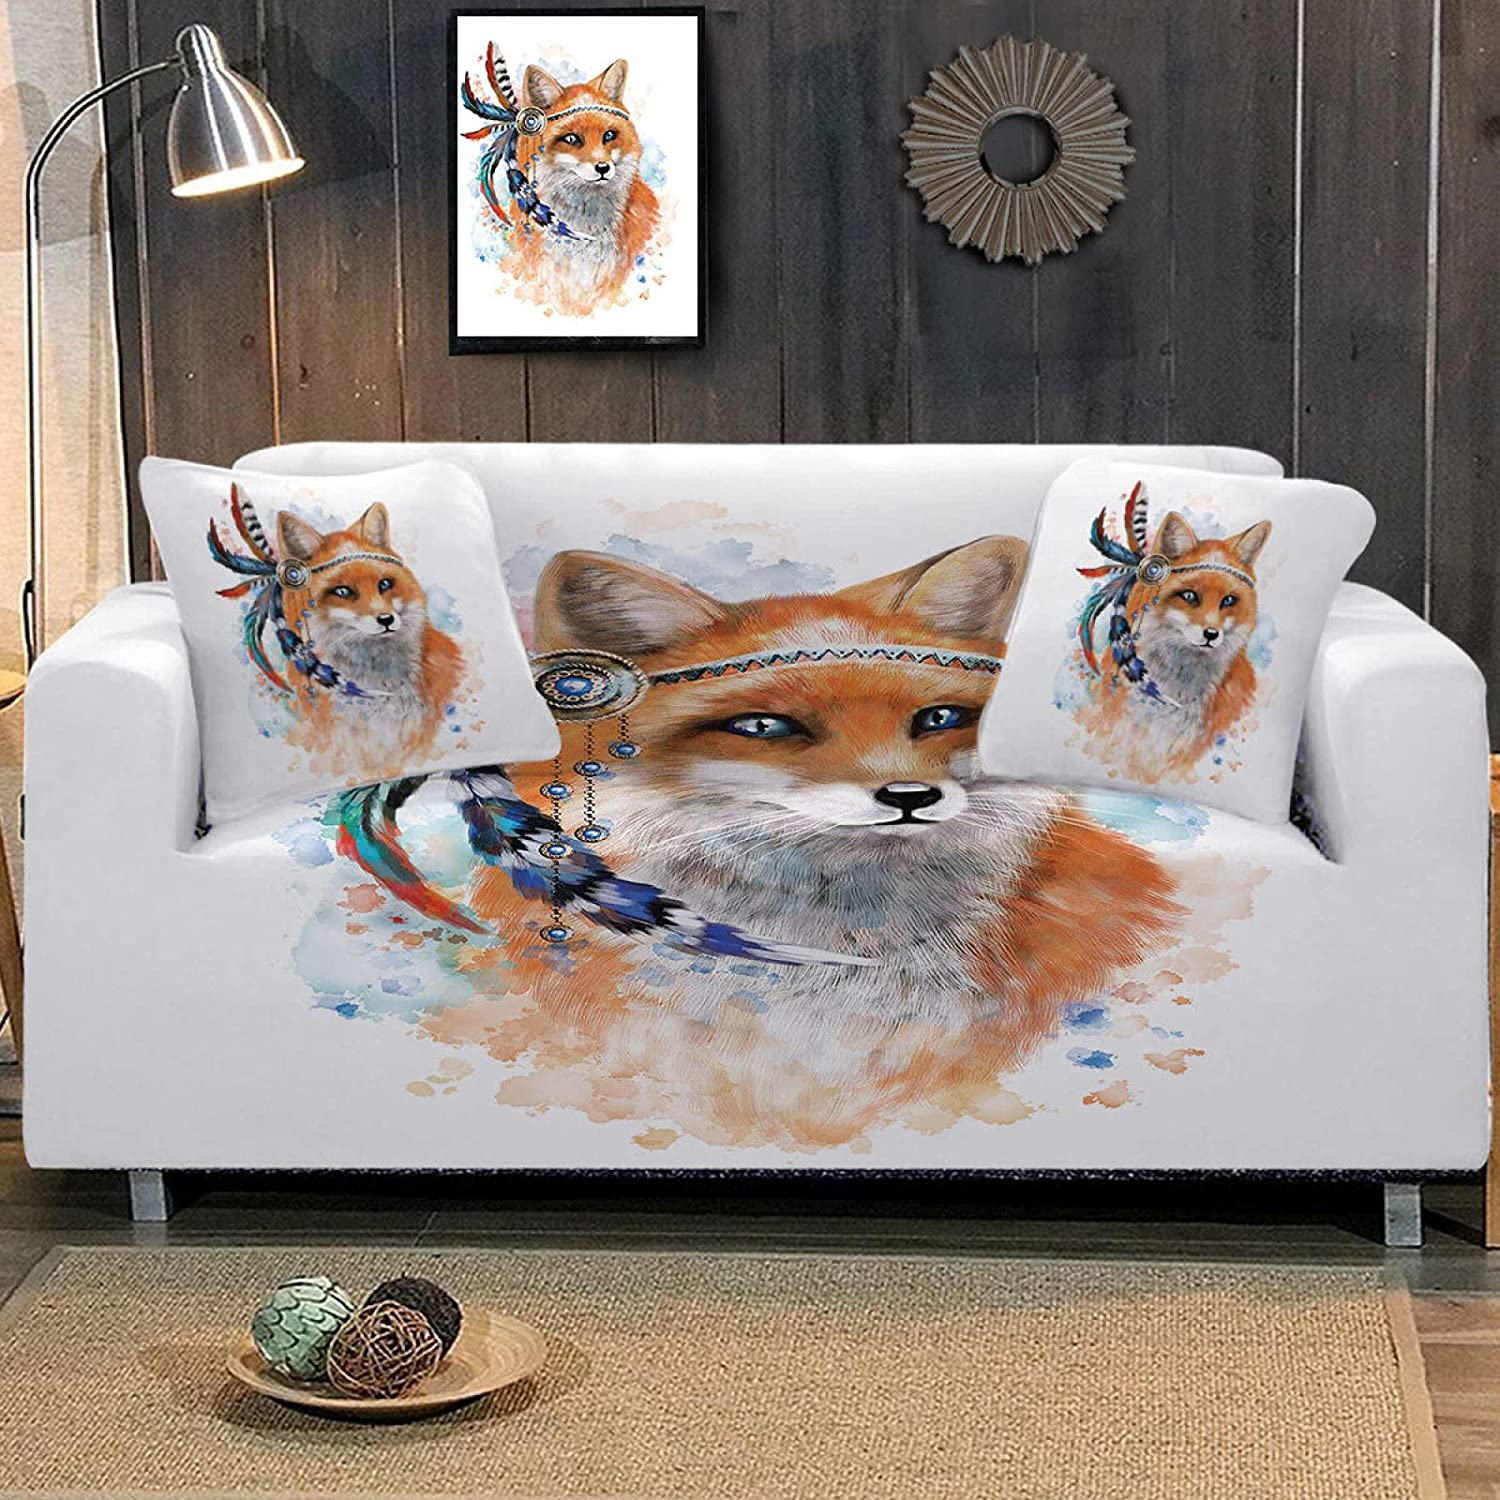 HUIJIE Easy-Going Super beauty product restock quality Direct sale of manufacturer top Sofa Slipcovers - All-Inclusive Animal Str Fox